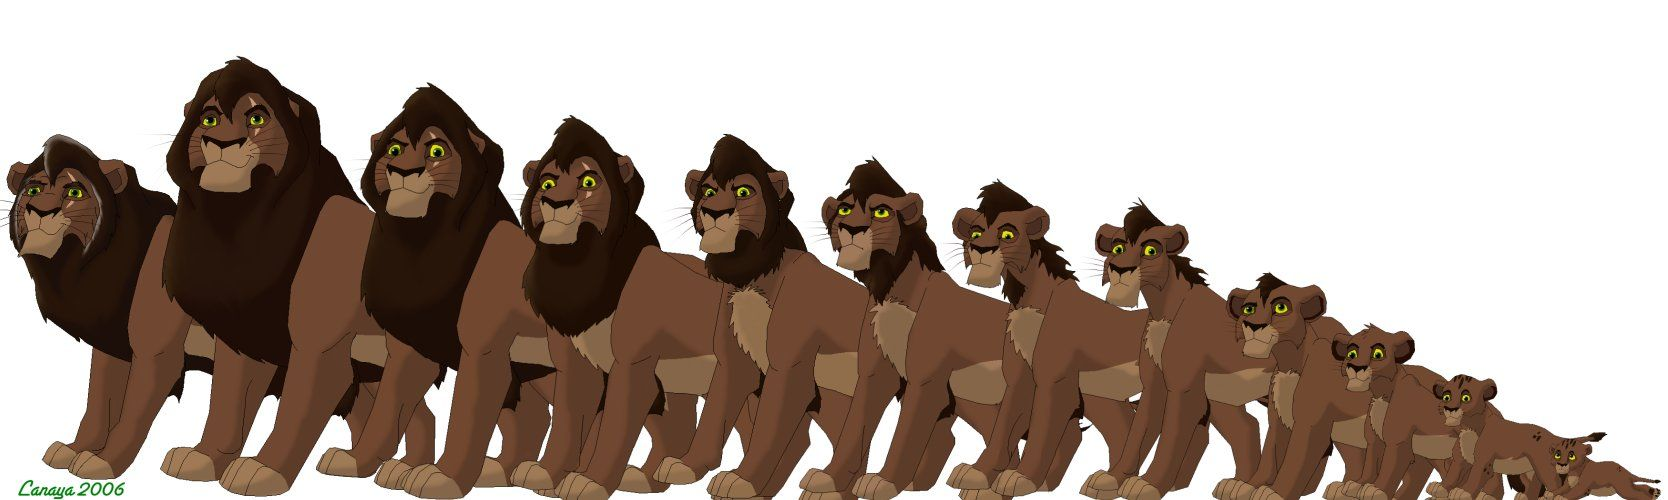 Kovu Age Progression by Goalie89.deviantart.com on @deviantART